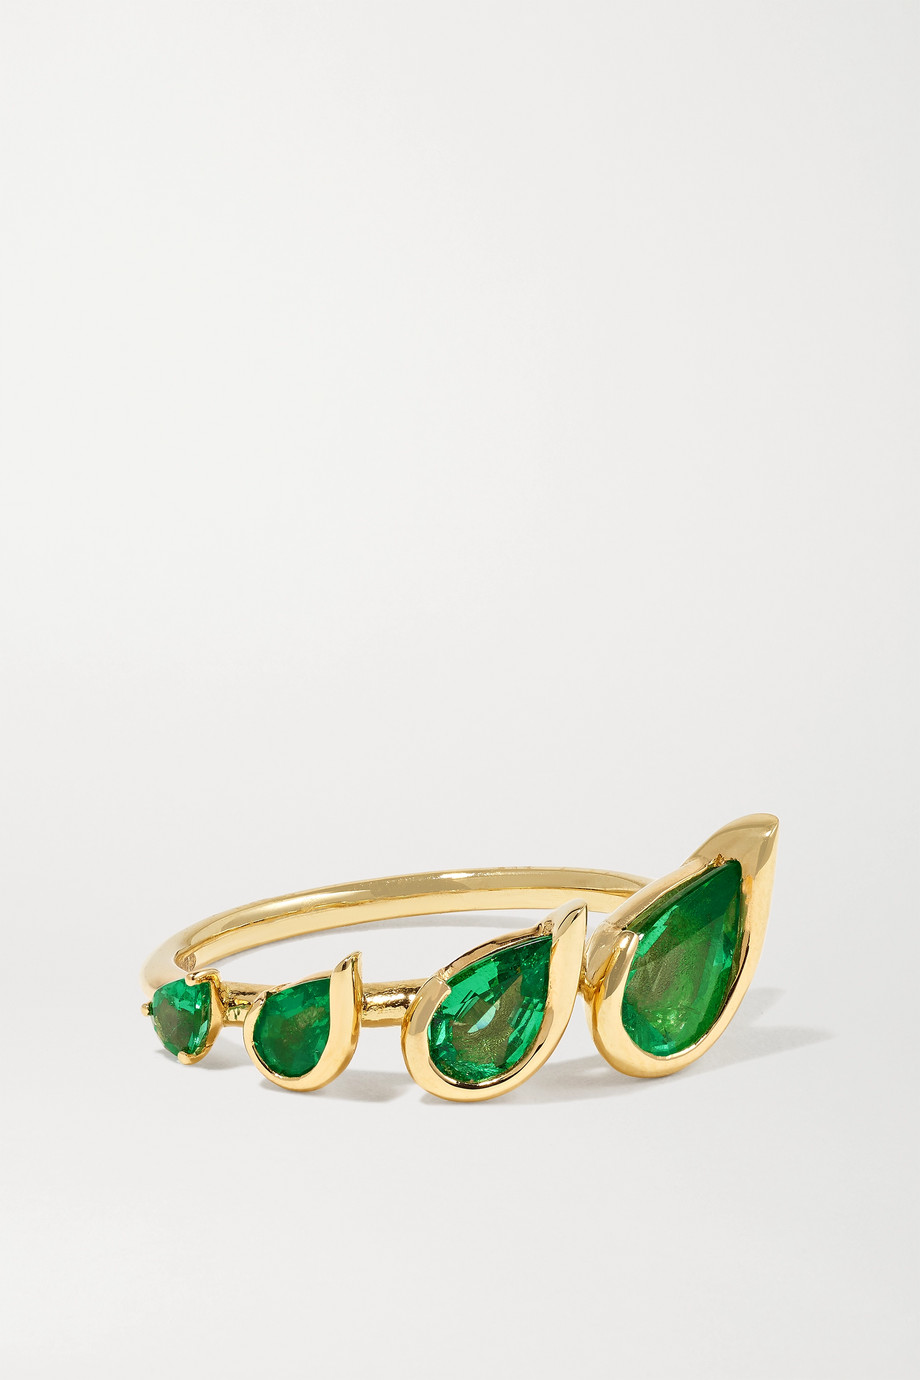 FERNANDO JORGE Flicker 18-karat gold emerald ring